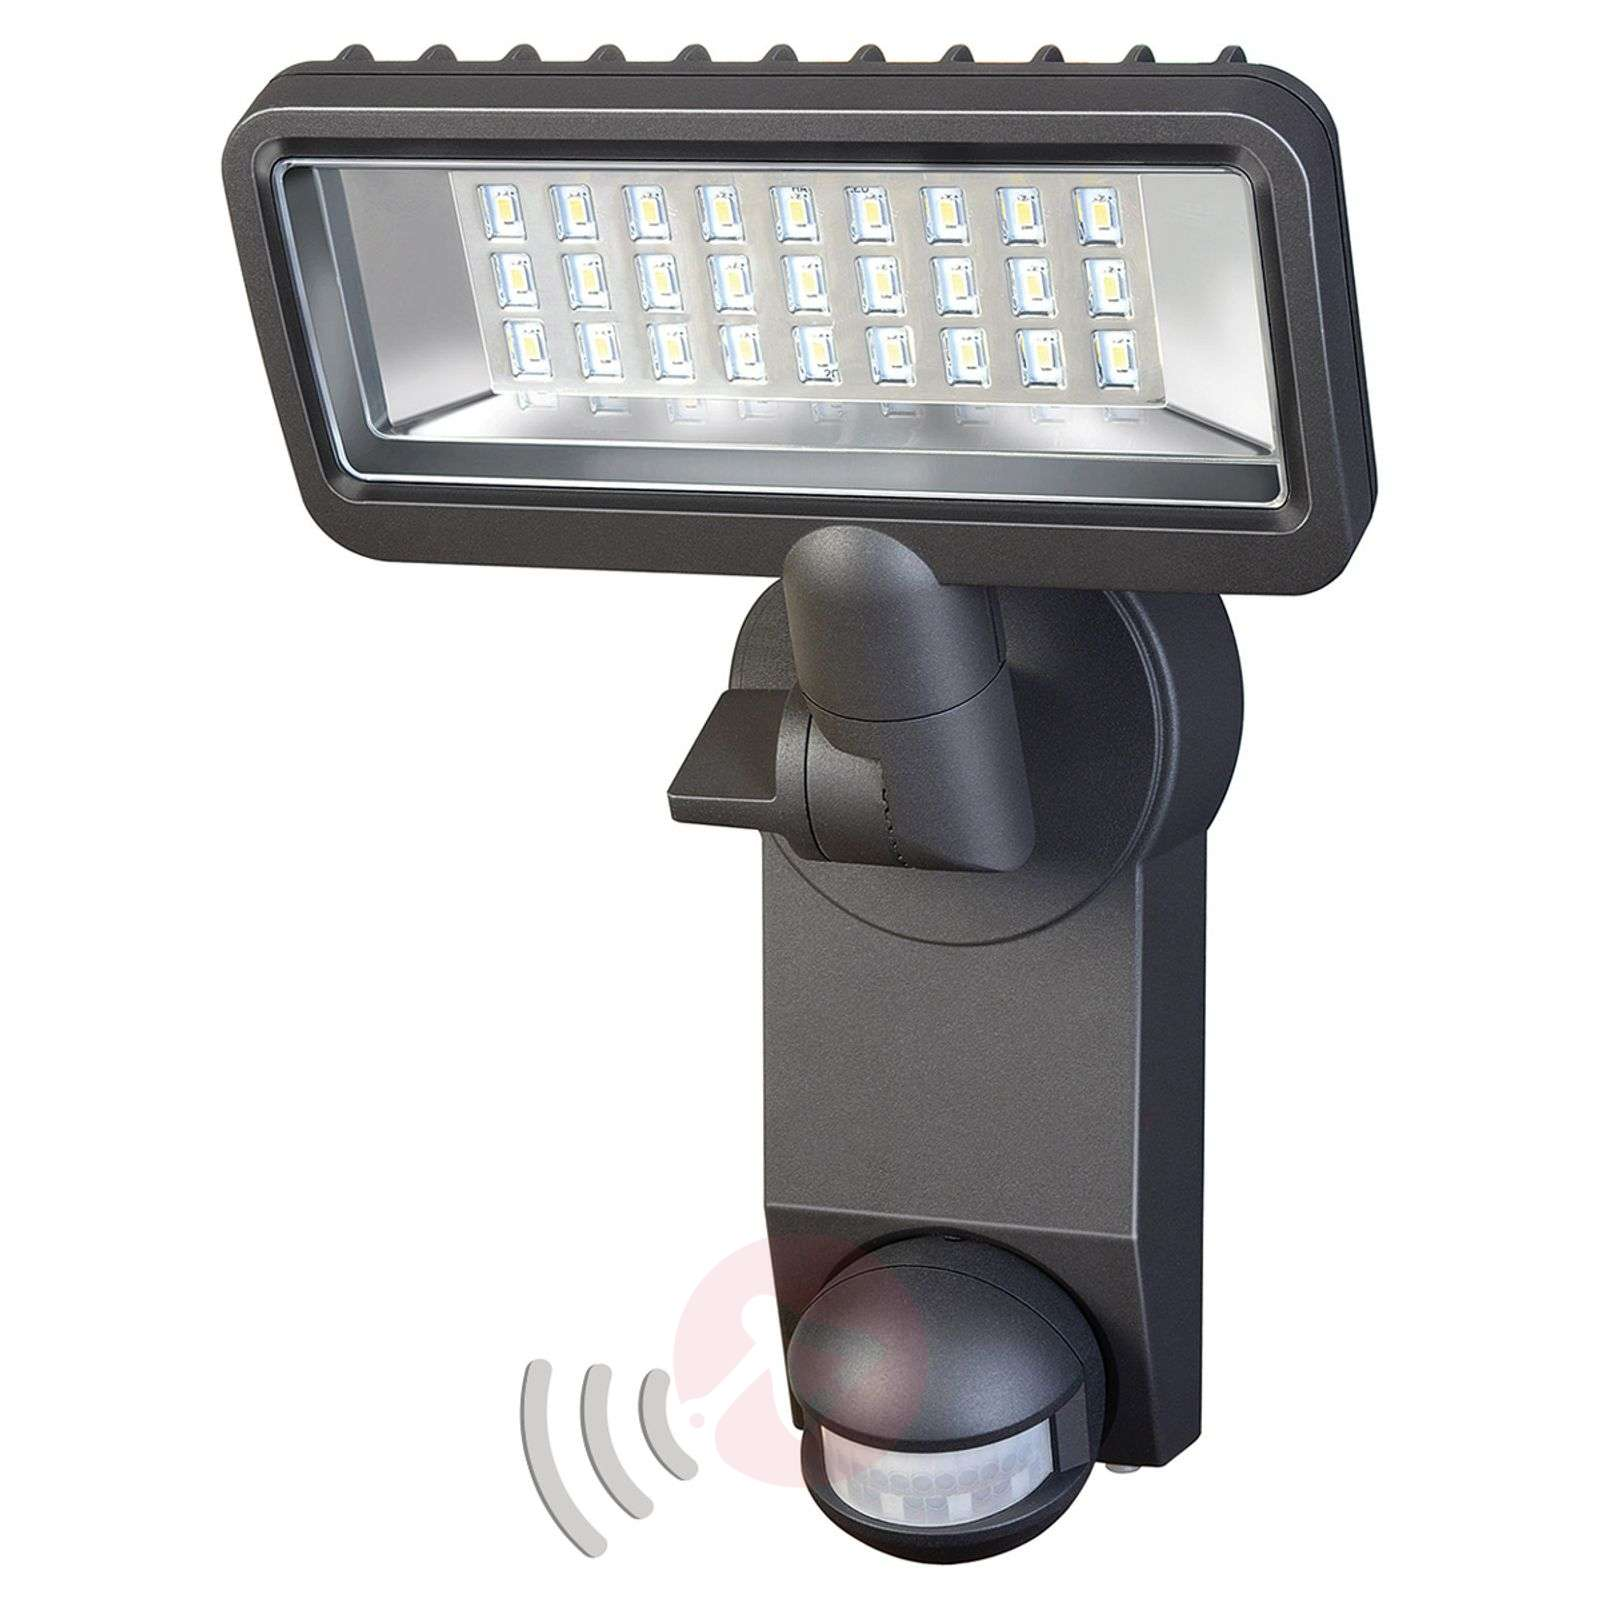 Reflector para ext. LED City con sensor de mov.-1540156-01